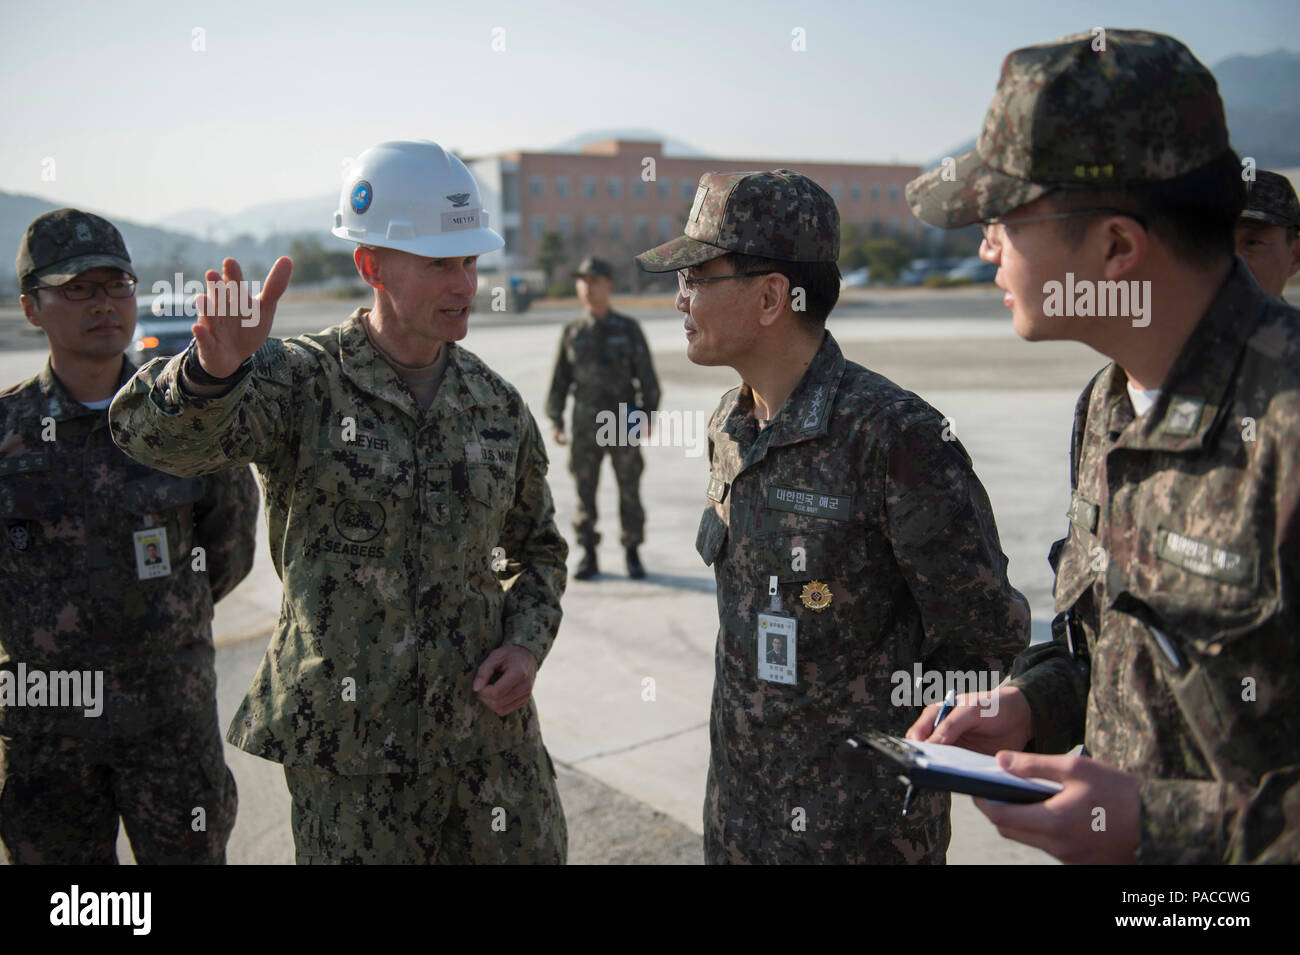 160315-N-HA376-573 JINHAE, Republic of Korea (March 15, 2016) - U.S. Navy Capt. James Meyer, commodore, 30th Naval Construction Regiment (30 NCR), speaks with Republic of Korea (ROK) Navy Vice Adm. Jung, Jin-soep, during exercise Foal Eagle 2016. 30 NCR is forward deployed to provide command and control of U.S. Navy Seabees working with their ROK counterparts during Foal Eagle. Foal Eagle is an annual, bilateral training exercise designed to enhance the readiness of U.S. and ROK forces, and their ability to work together during a crisis. (U.S. Navy photo by Chief Mass Communication Specialist  - Stock Image